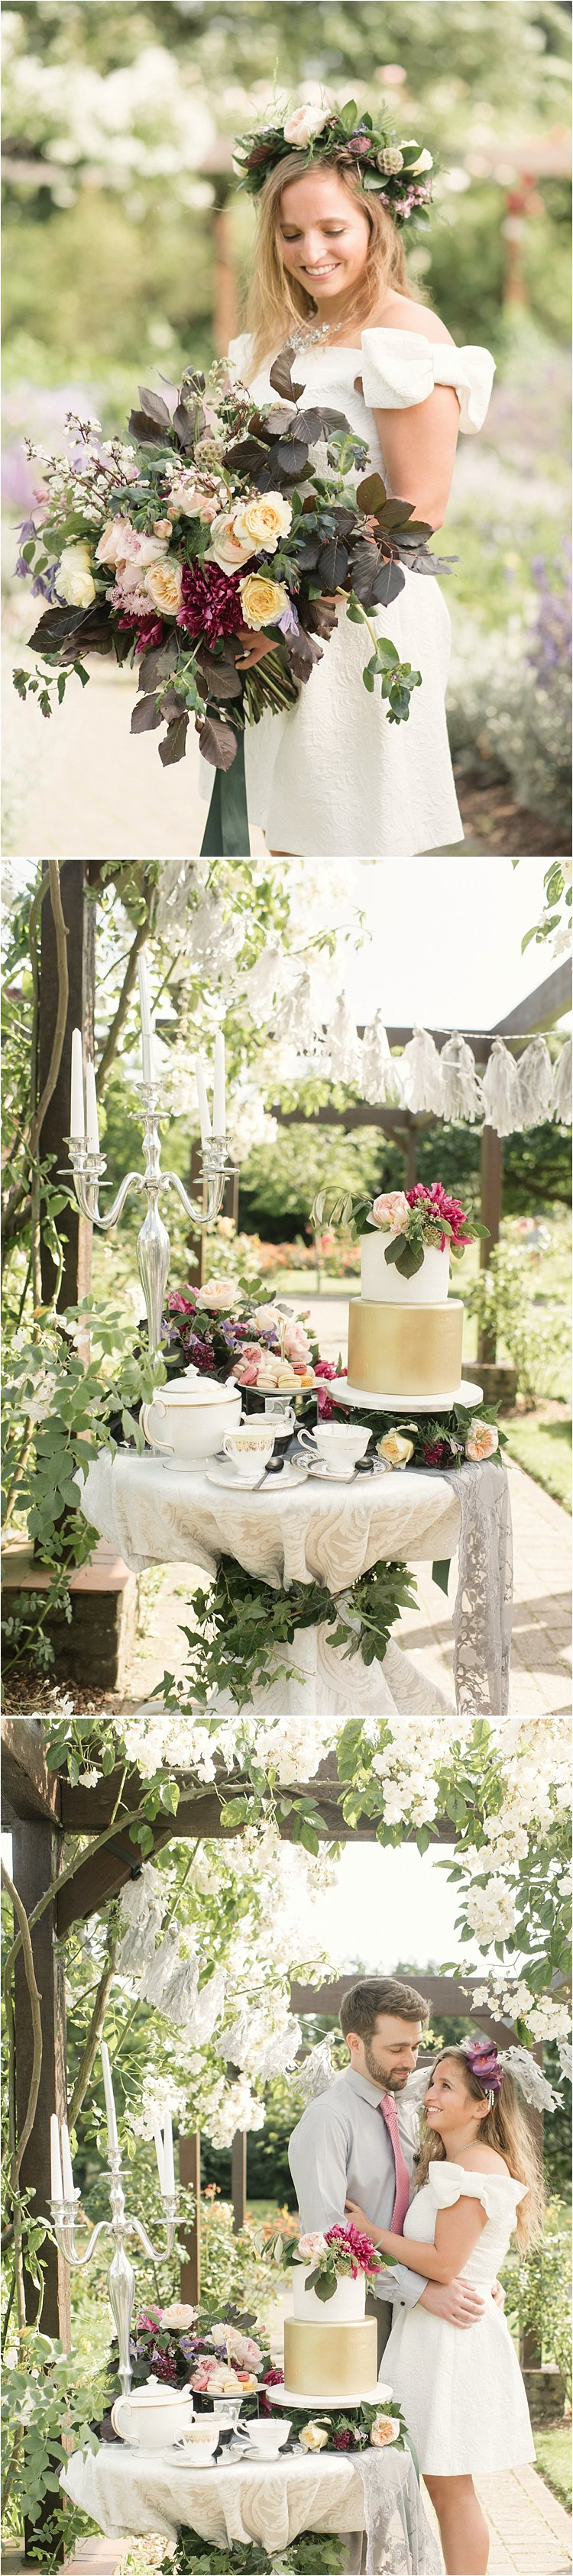 Vintage crockery hire for London urban wedding